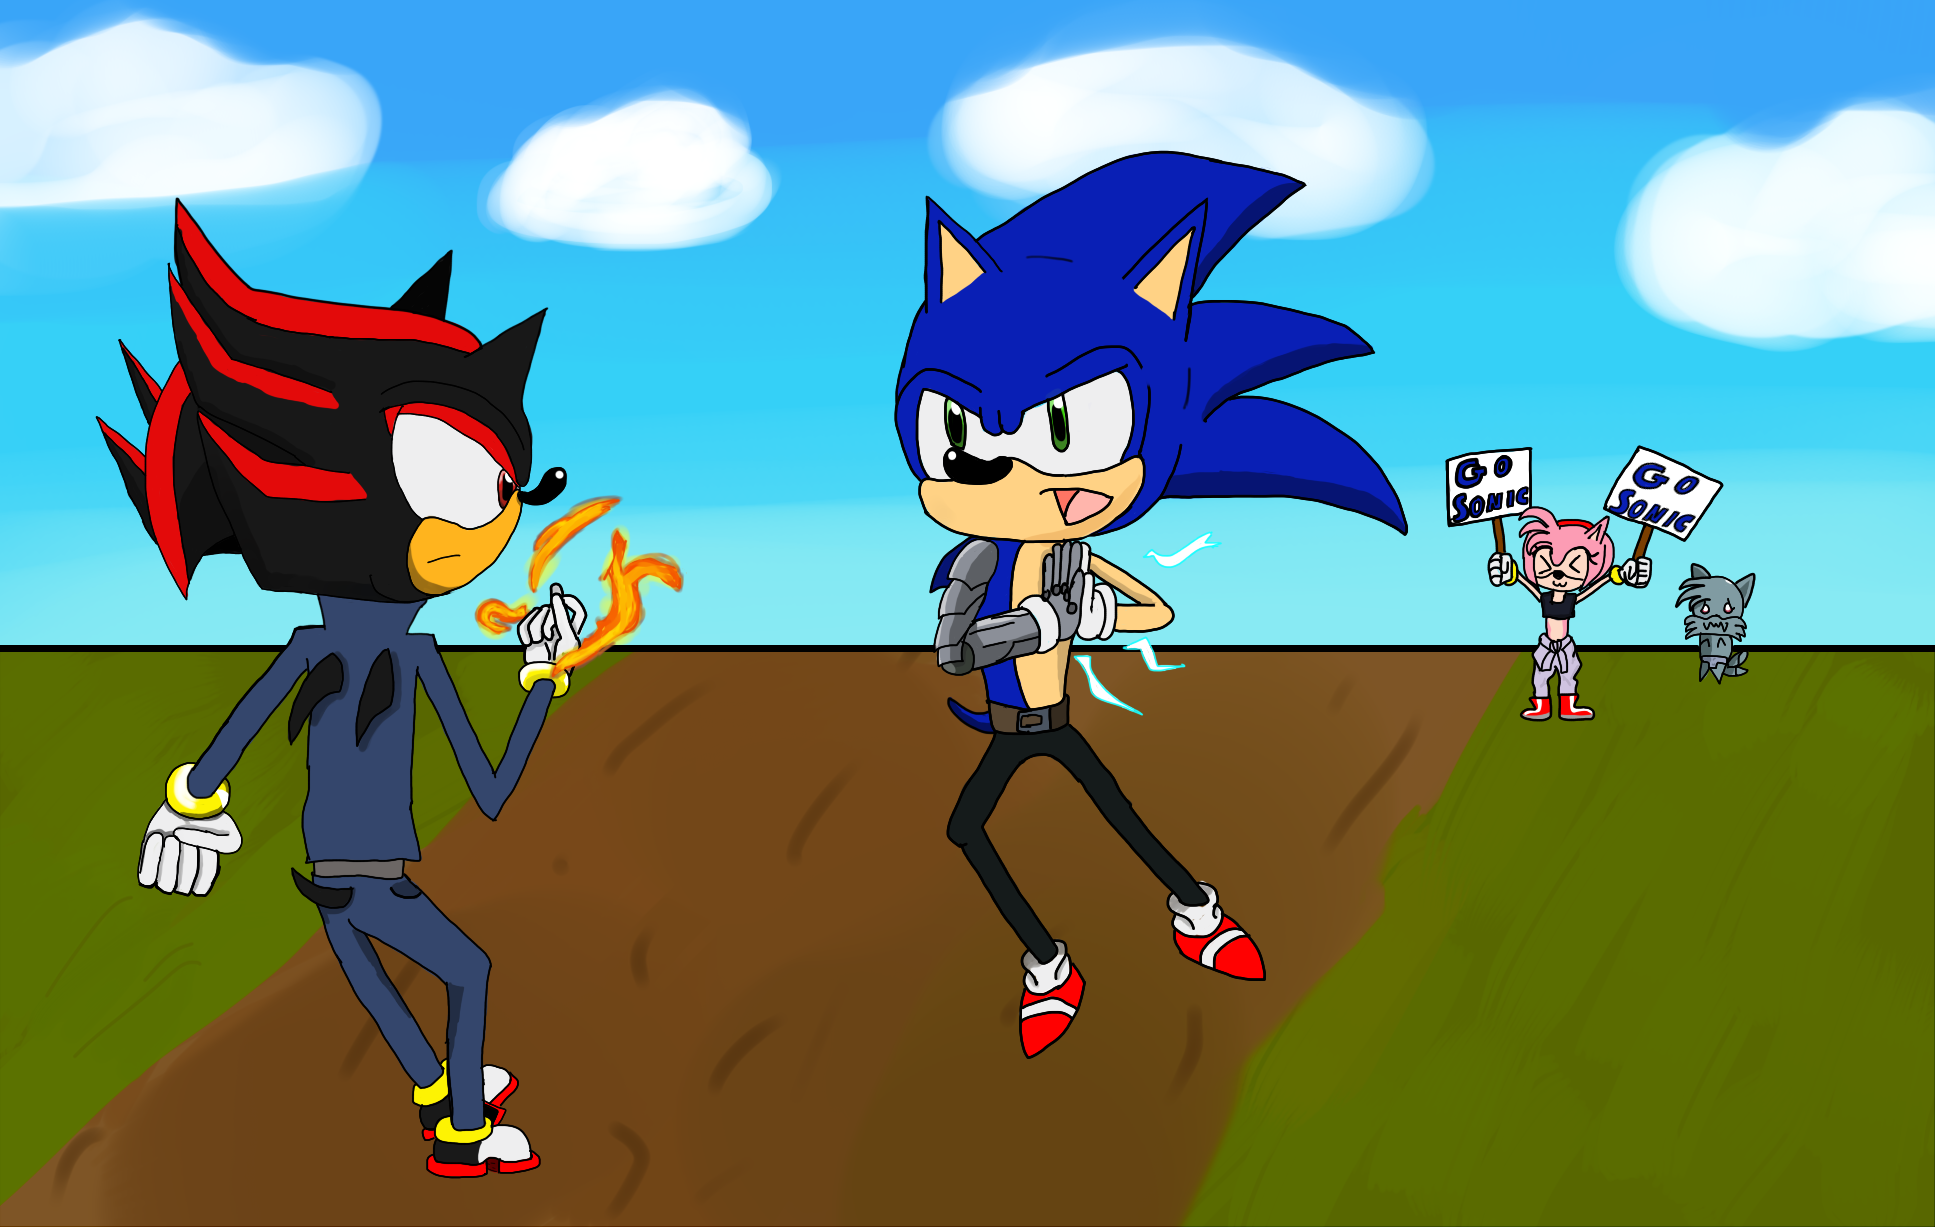 Sonic vs shadow by nintenfan96 on deviantart - Jeux de sonic vs shadow ...